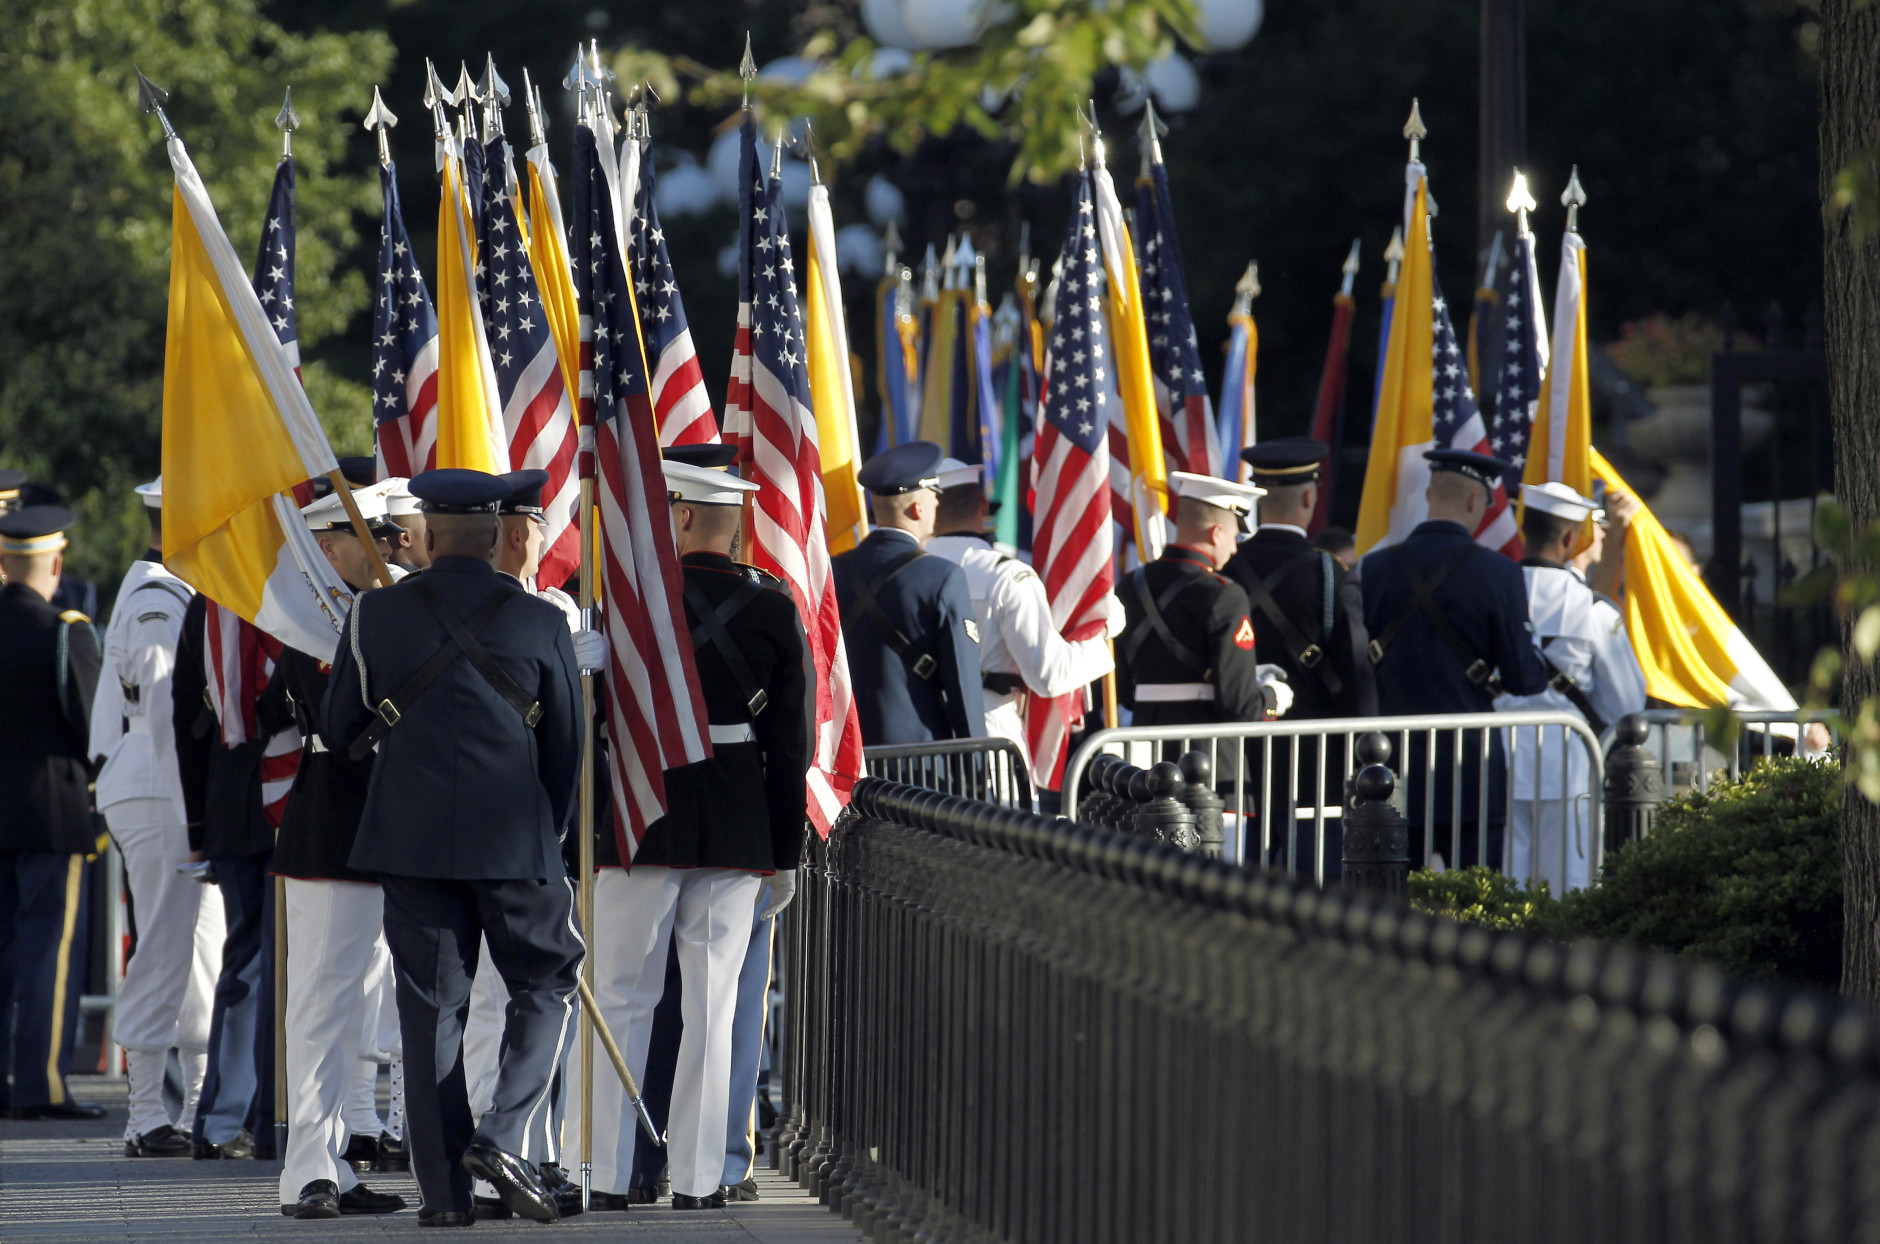 Members of the armed services carry U.S. and Vatican flags into the White House in Washington, Wednesday, Sept. 23, 2015, for the upcoming visit by Pope Francis. (AP Photo/Alex Brandon/Pool)